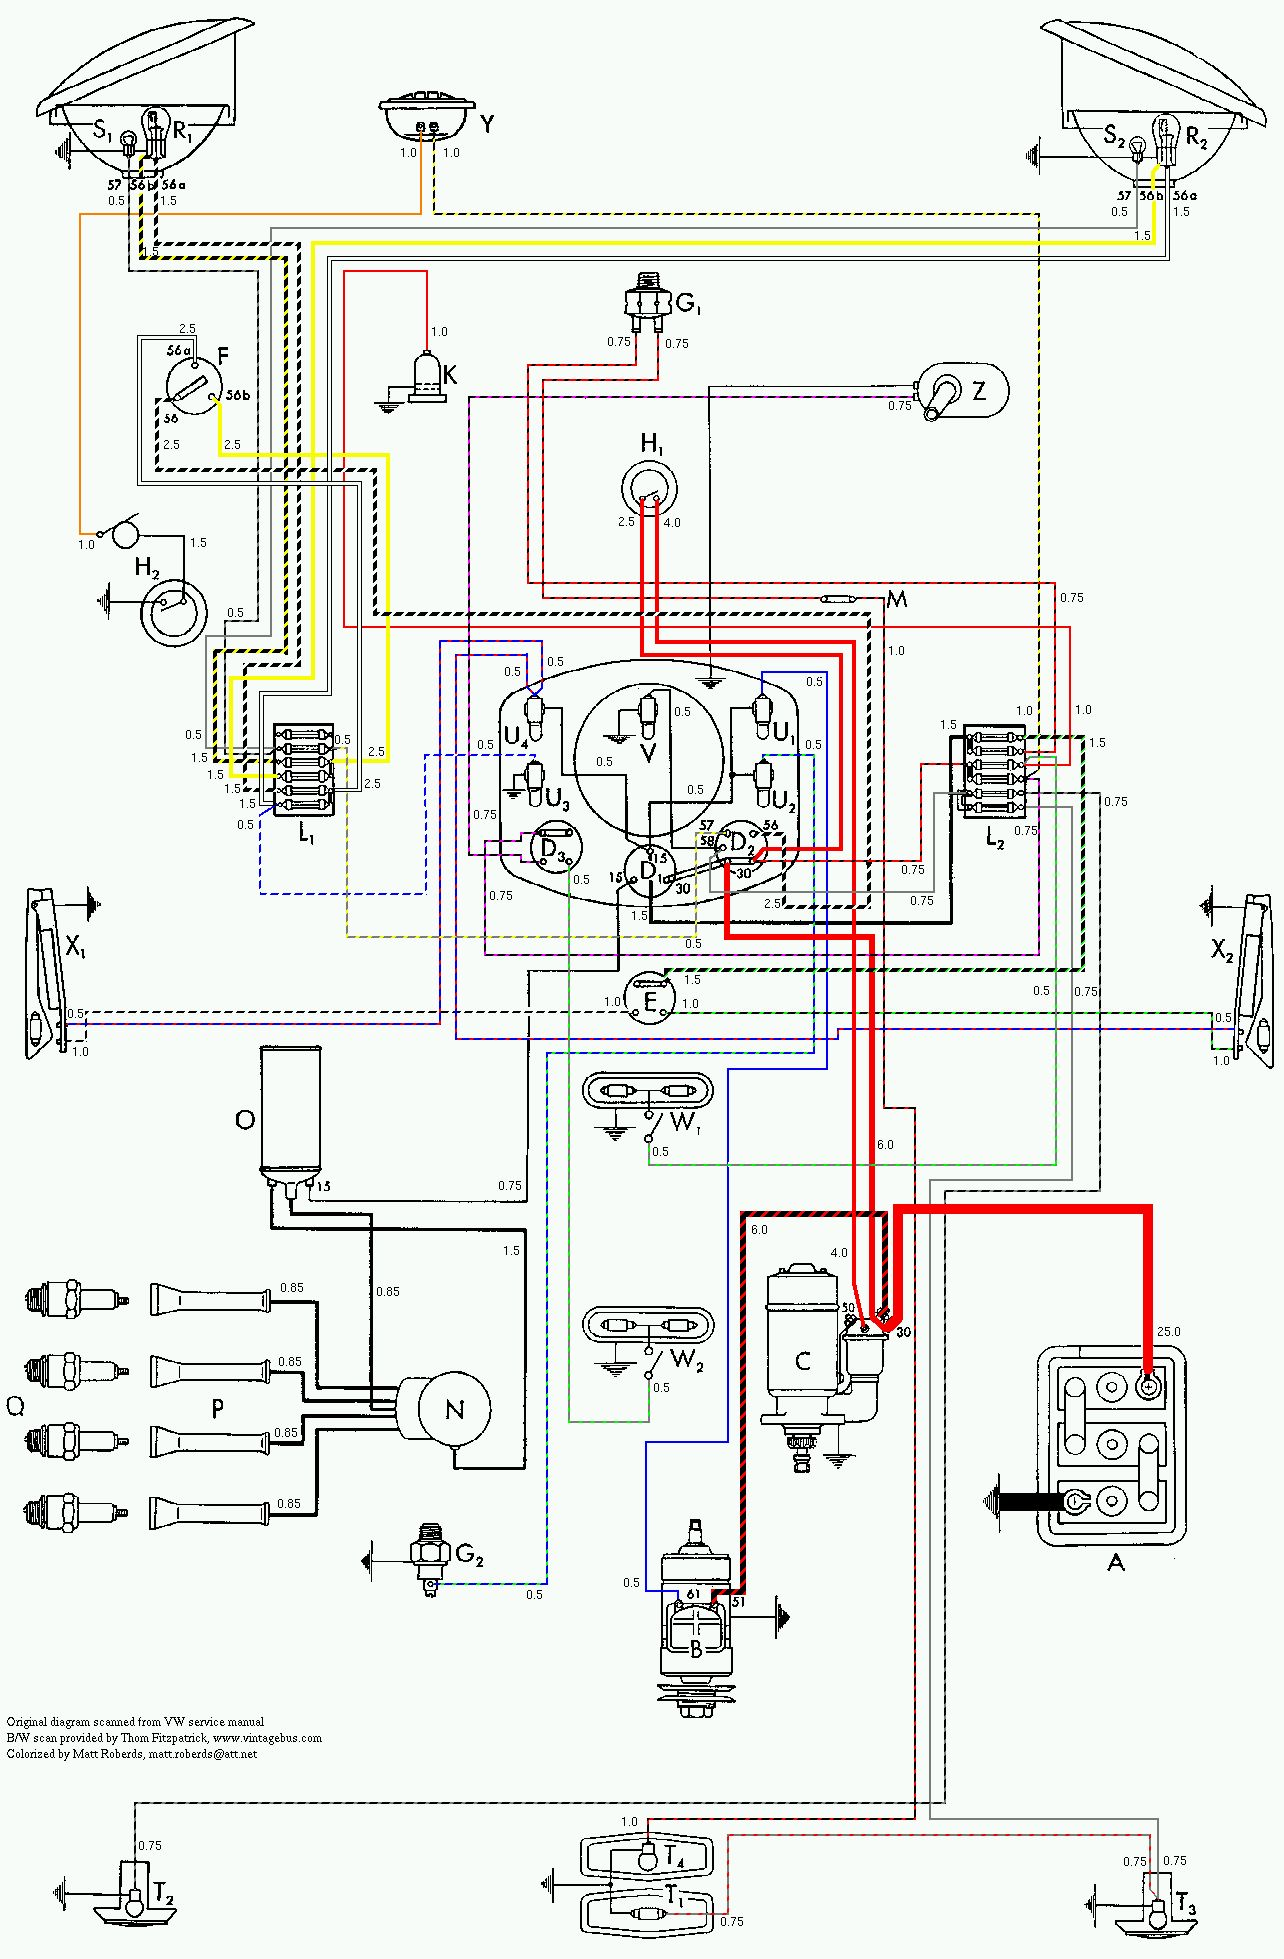 Vw Bus And Other Wiring Diagrams 1968 Chrysler Diagram